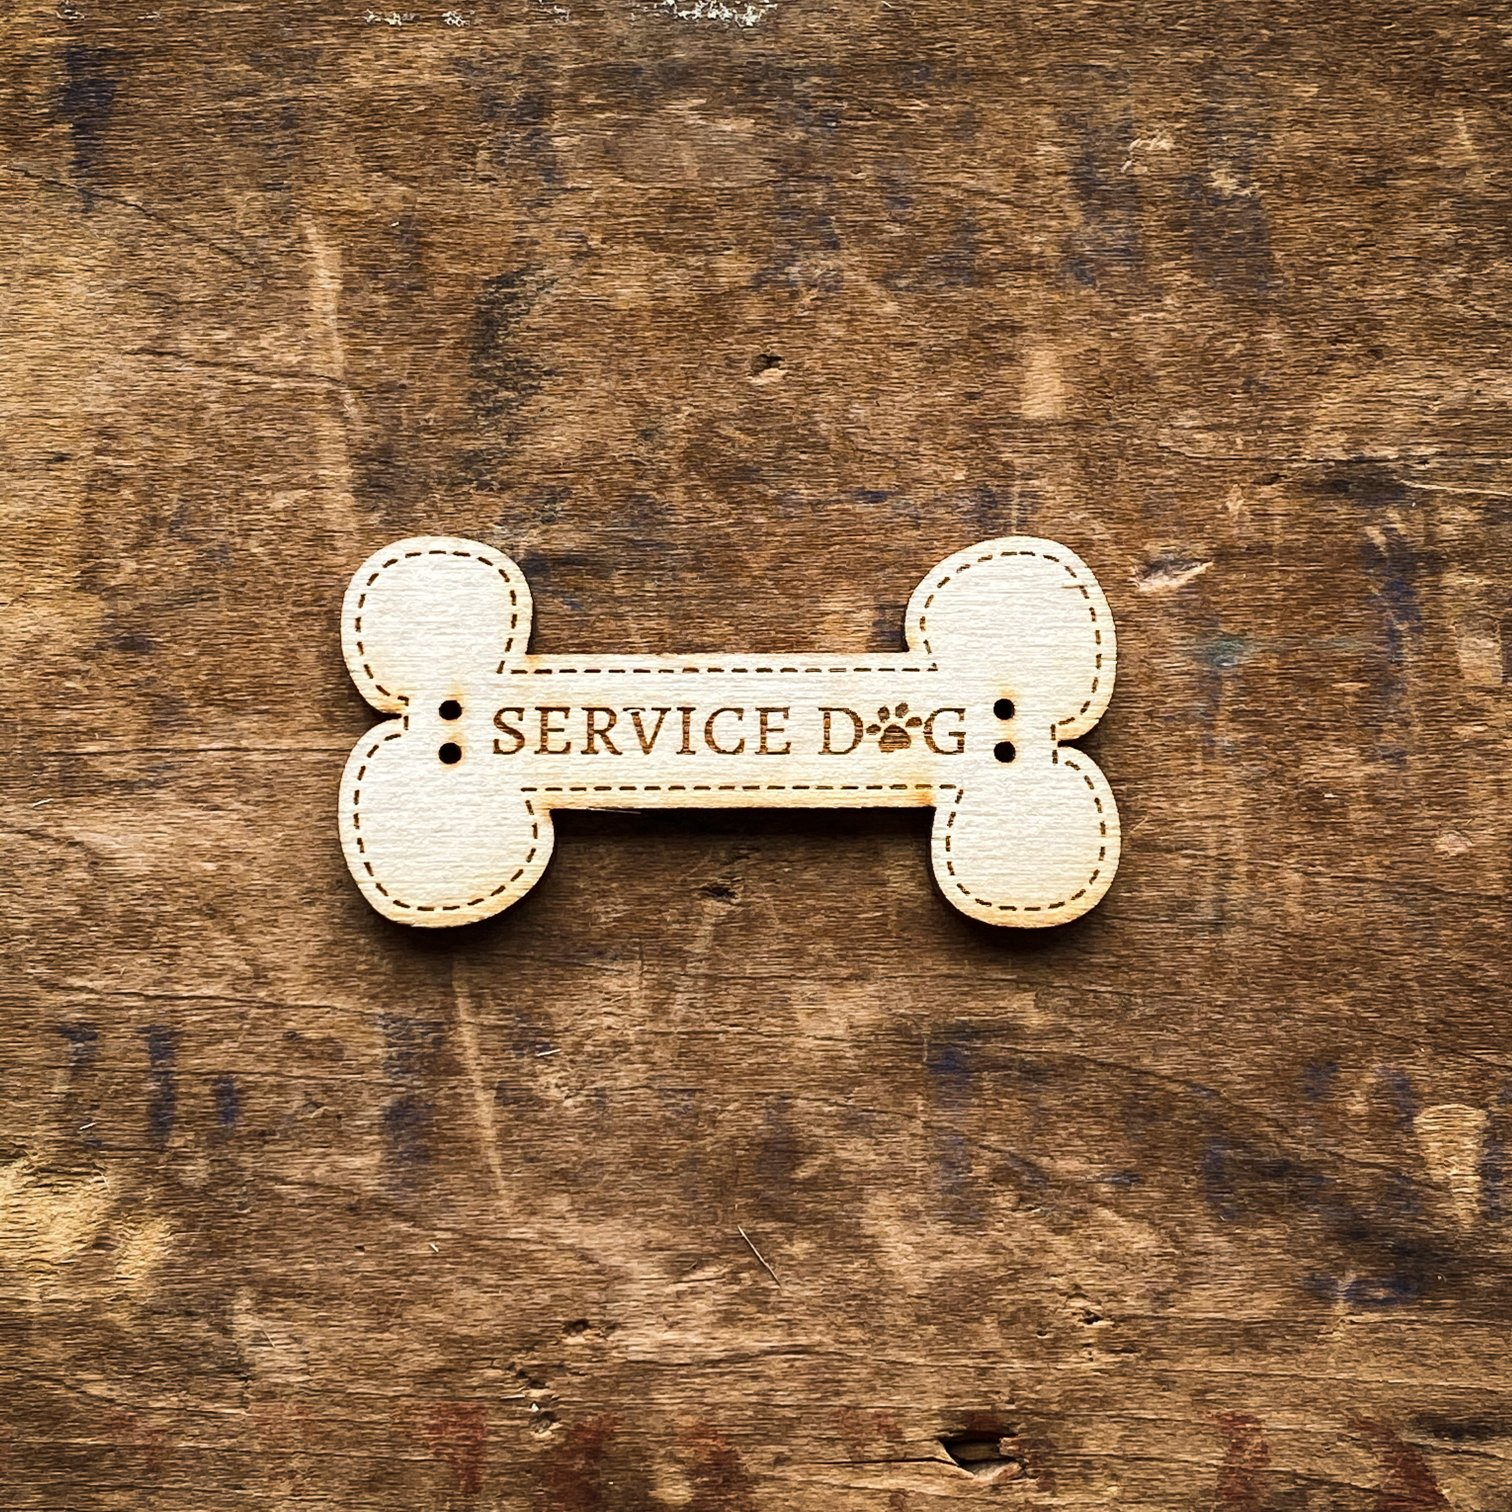 Service Dog Bone Button